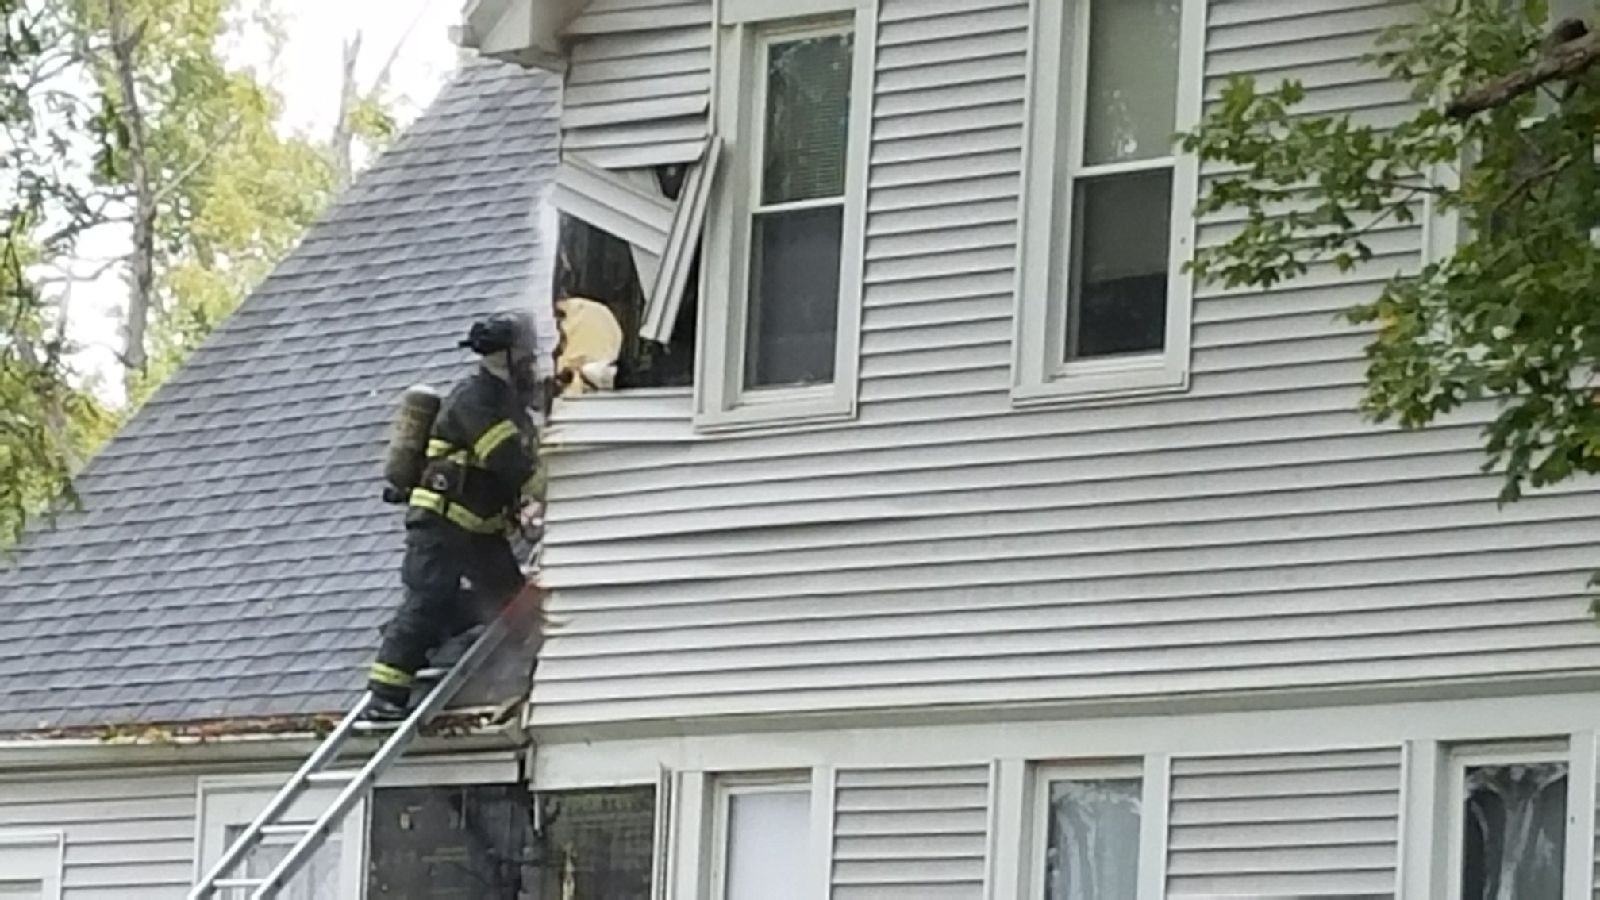 Firefighters taking off siding as they ensure the fire is put out.